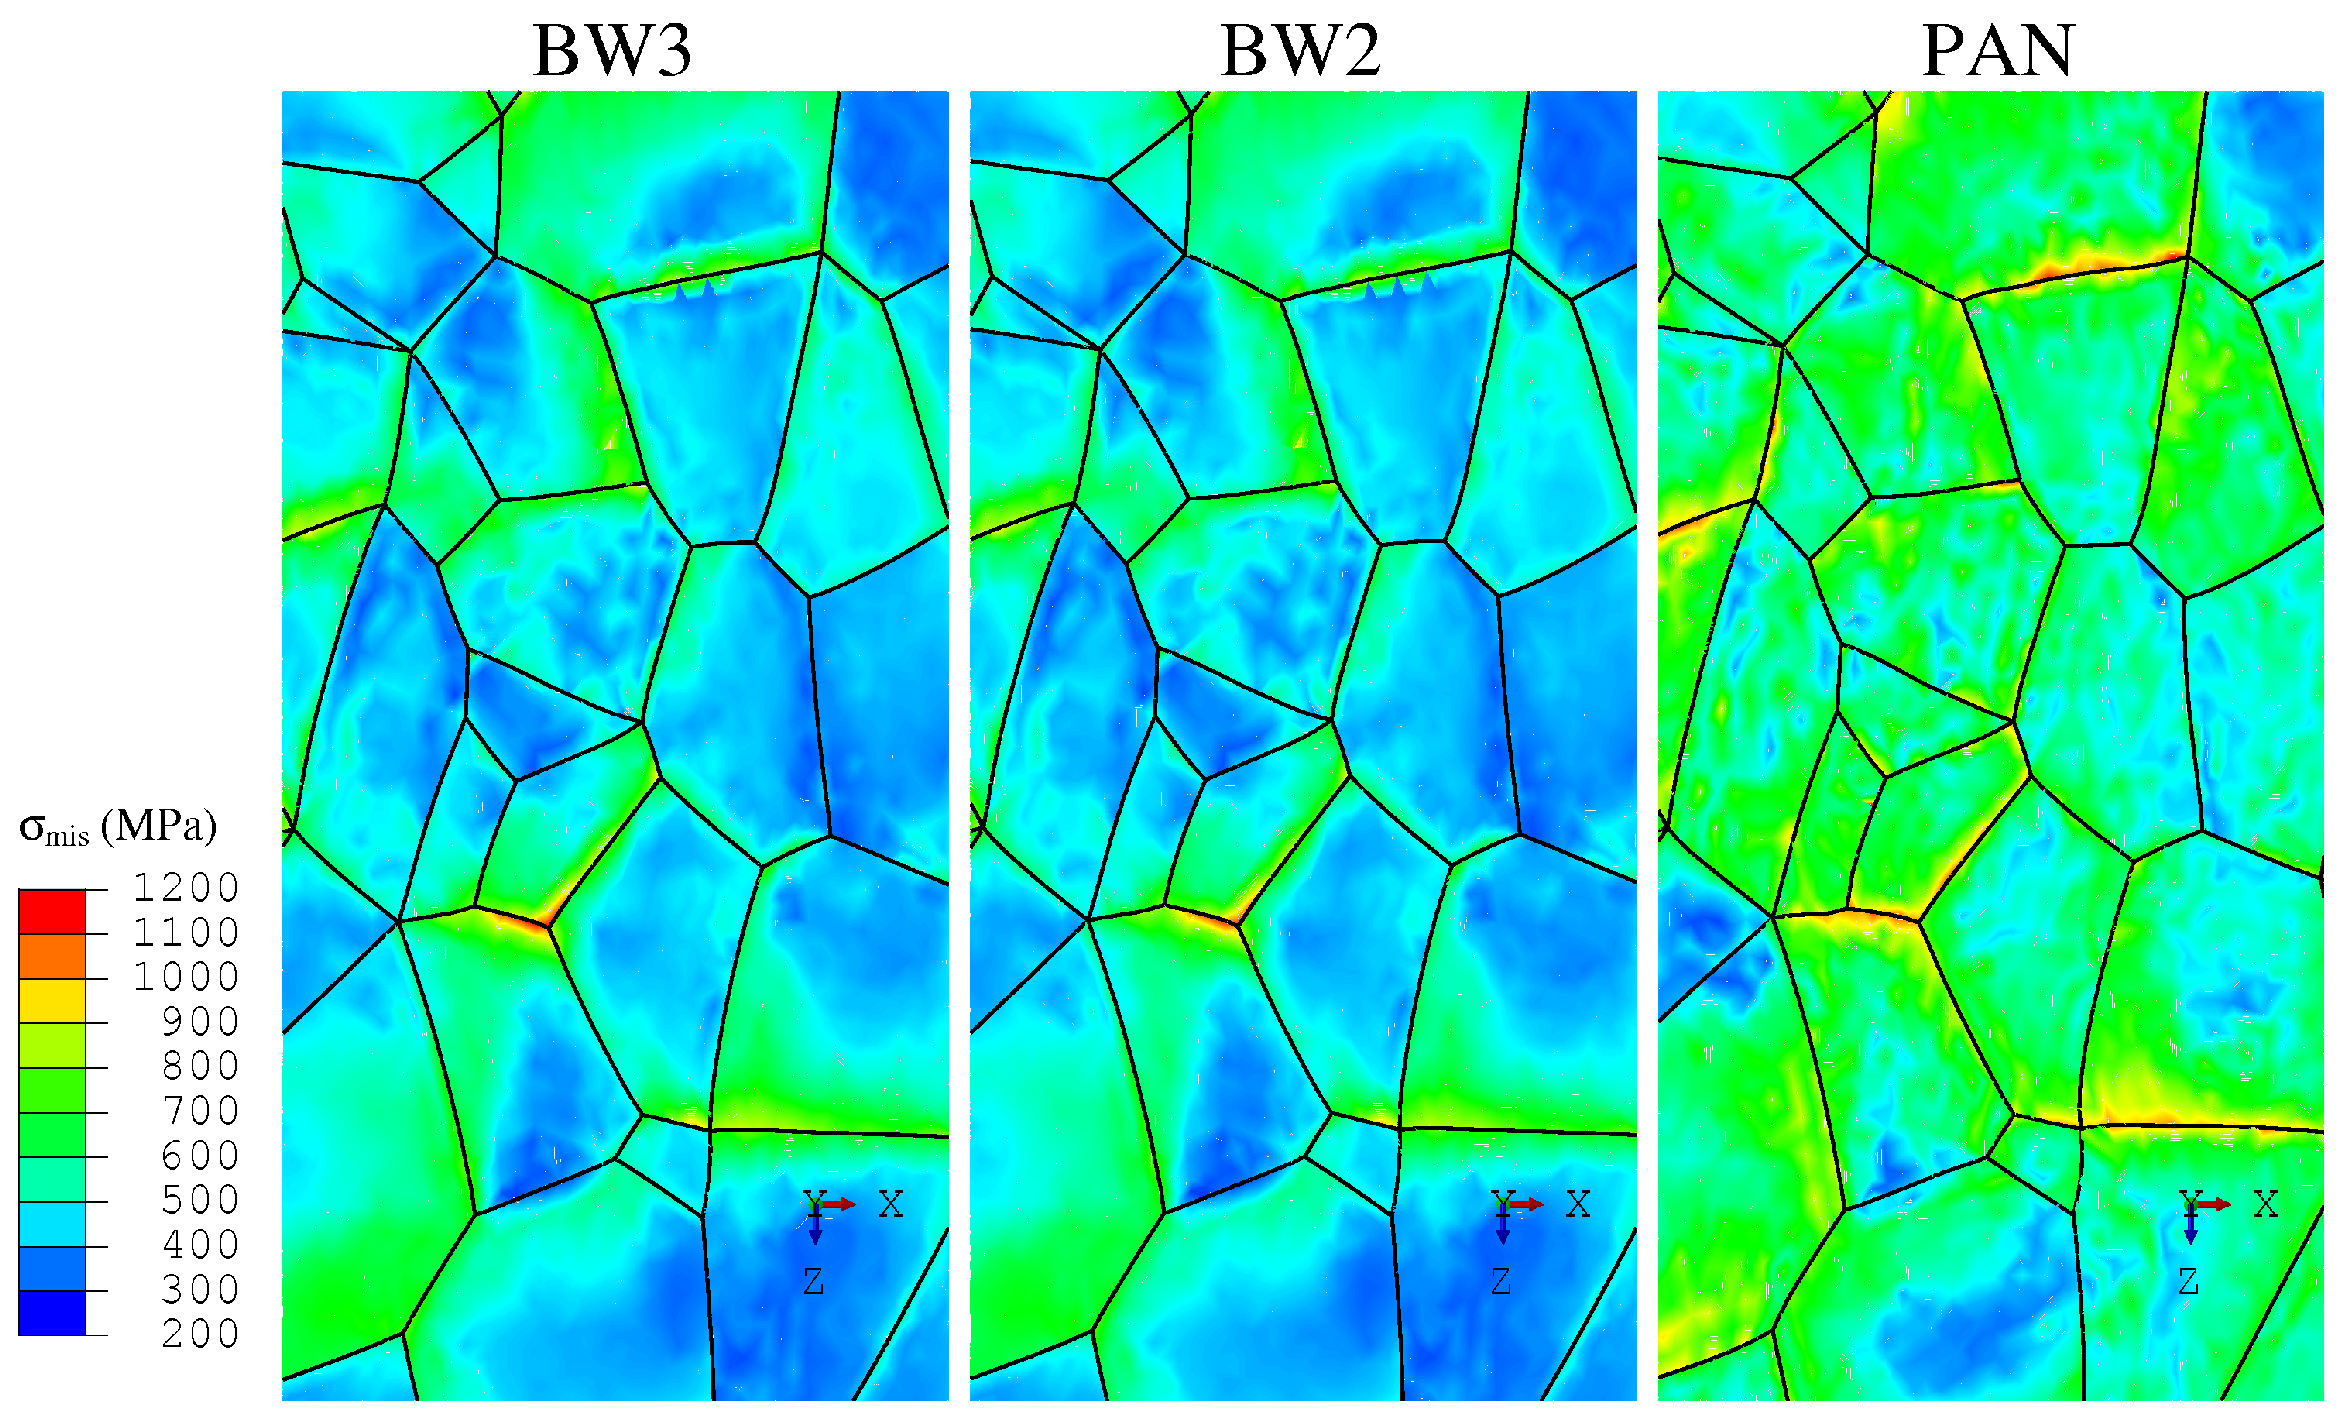 Crystals - Free Full-Text - Combining Single- and Poly-Crystalline Measurements for Identification of Crystal Plasticity Parameters: Application to Austenitic Stainless Steel - HTML Combining Single- and Poly-Crystalline Measurements for Identification of Crystal Plasticity Parameters: Application to Austenitic Stainless Steel - 웹